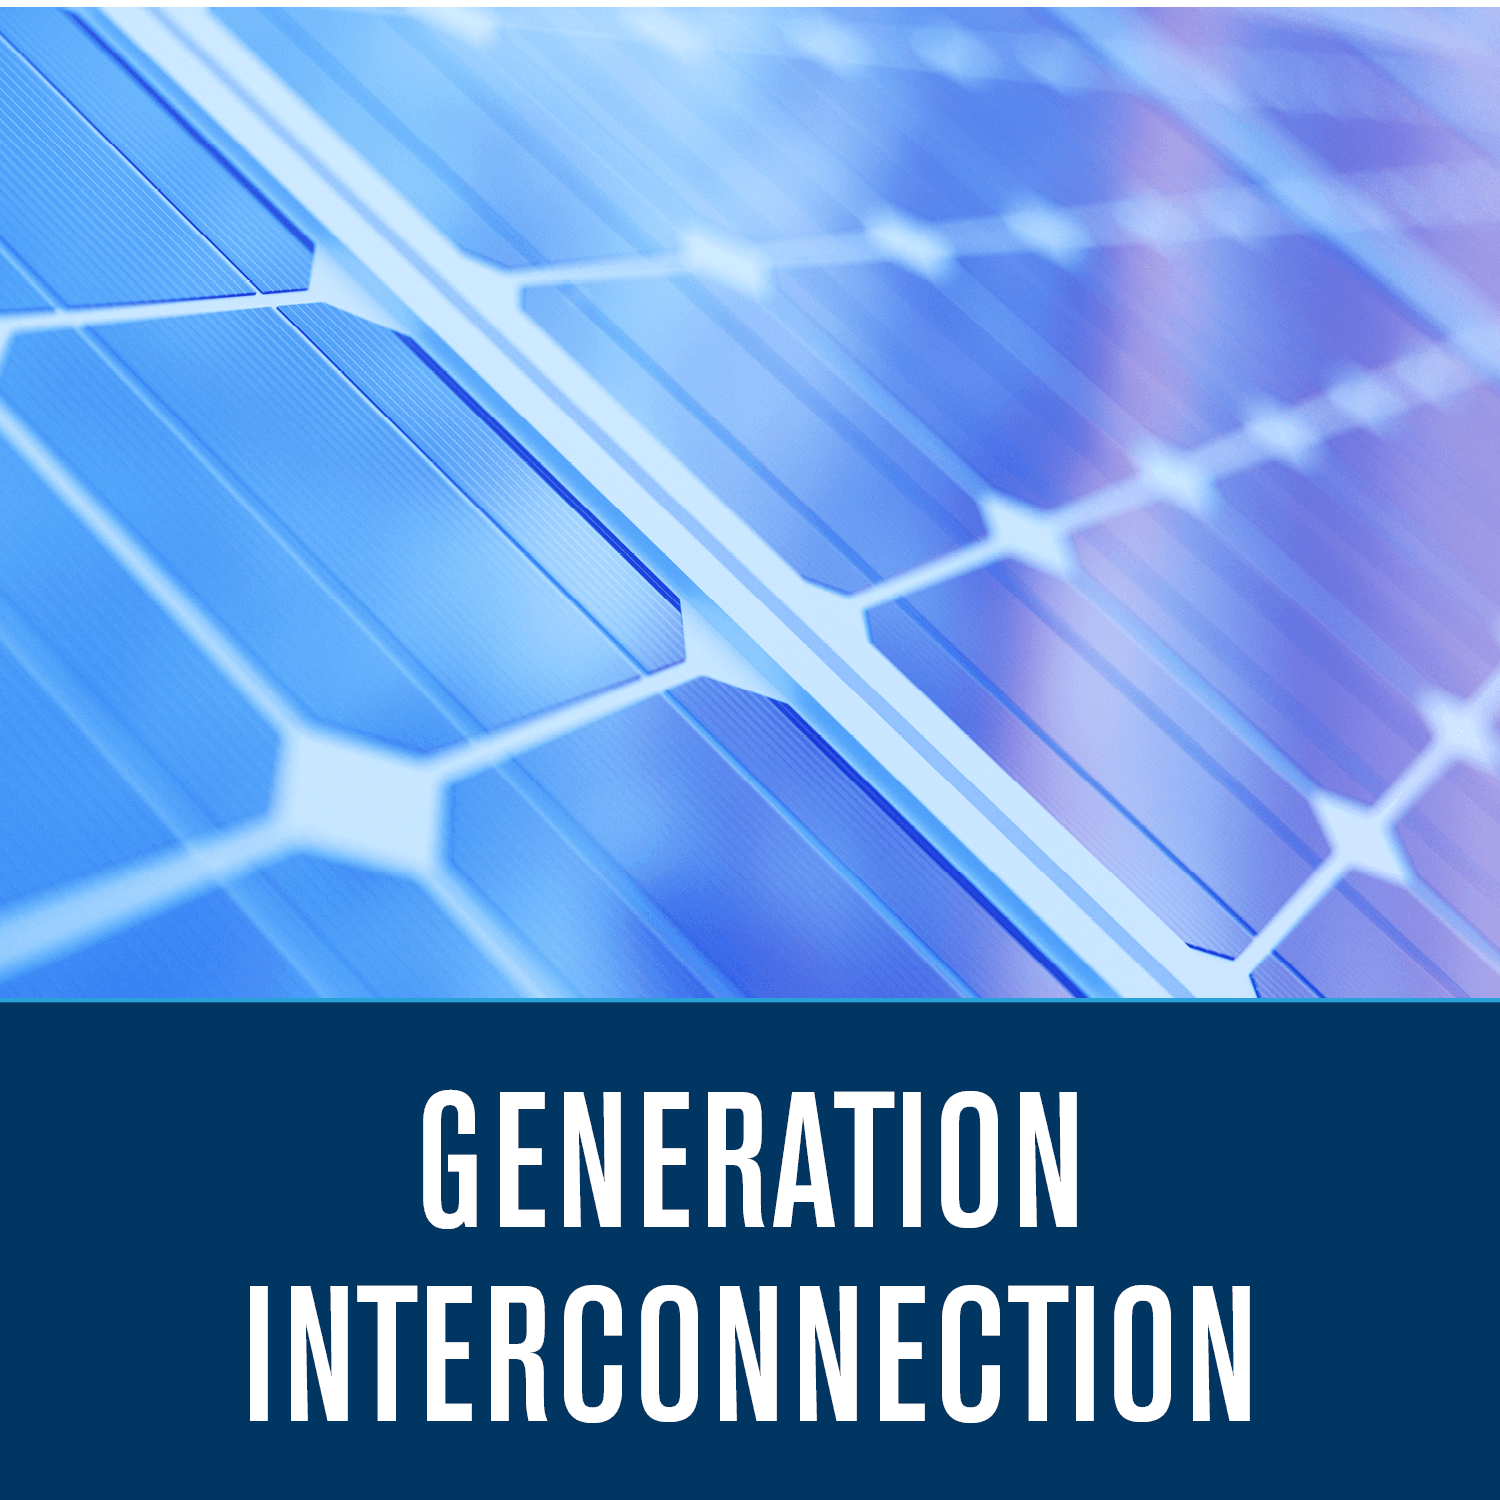 Generation Interconnection